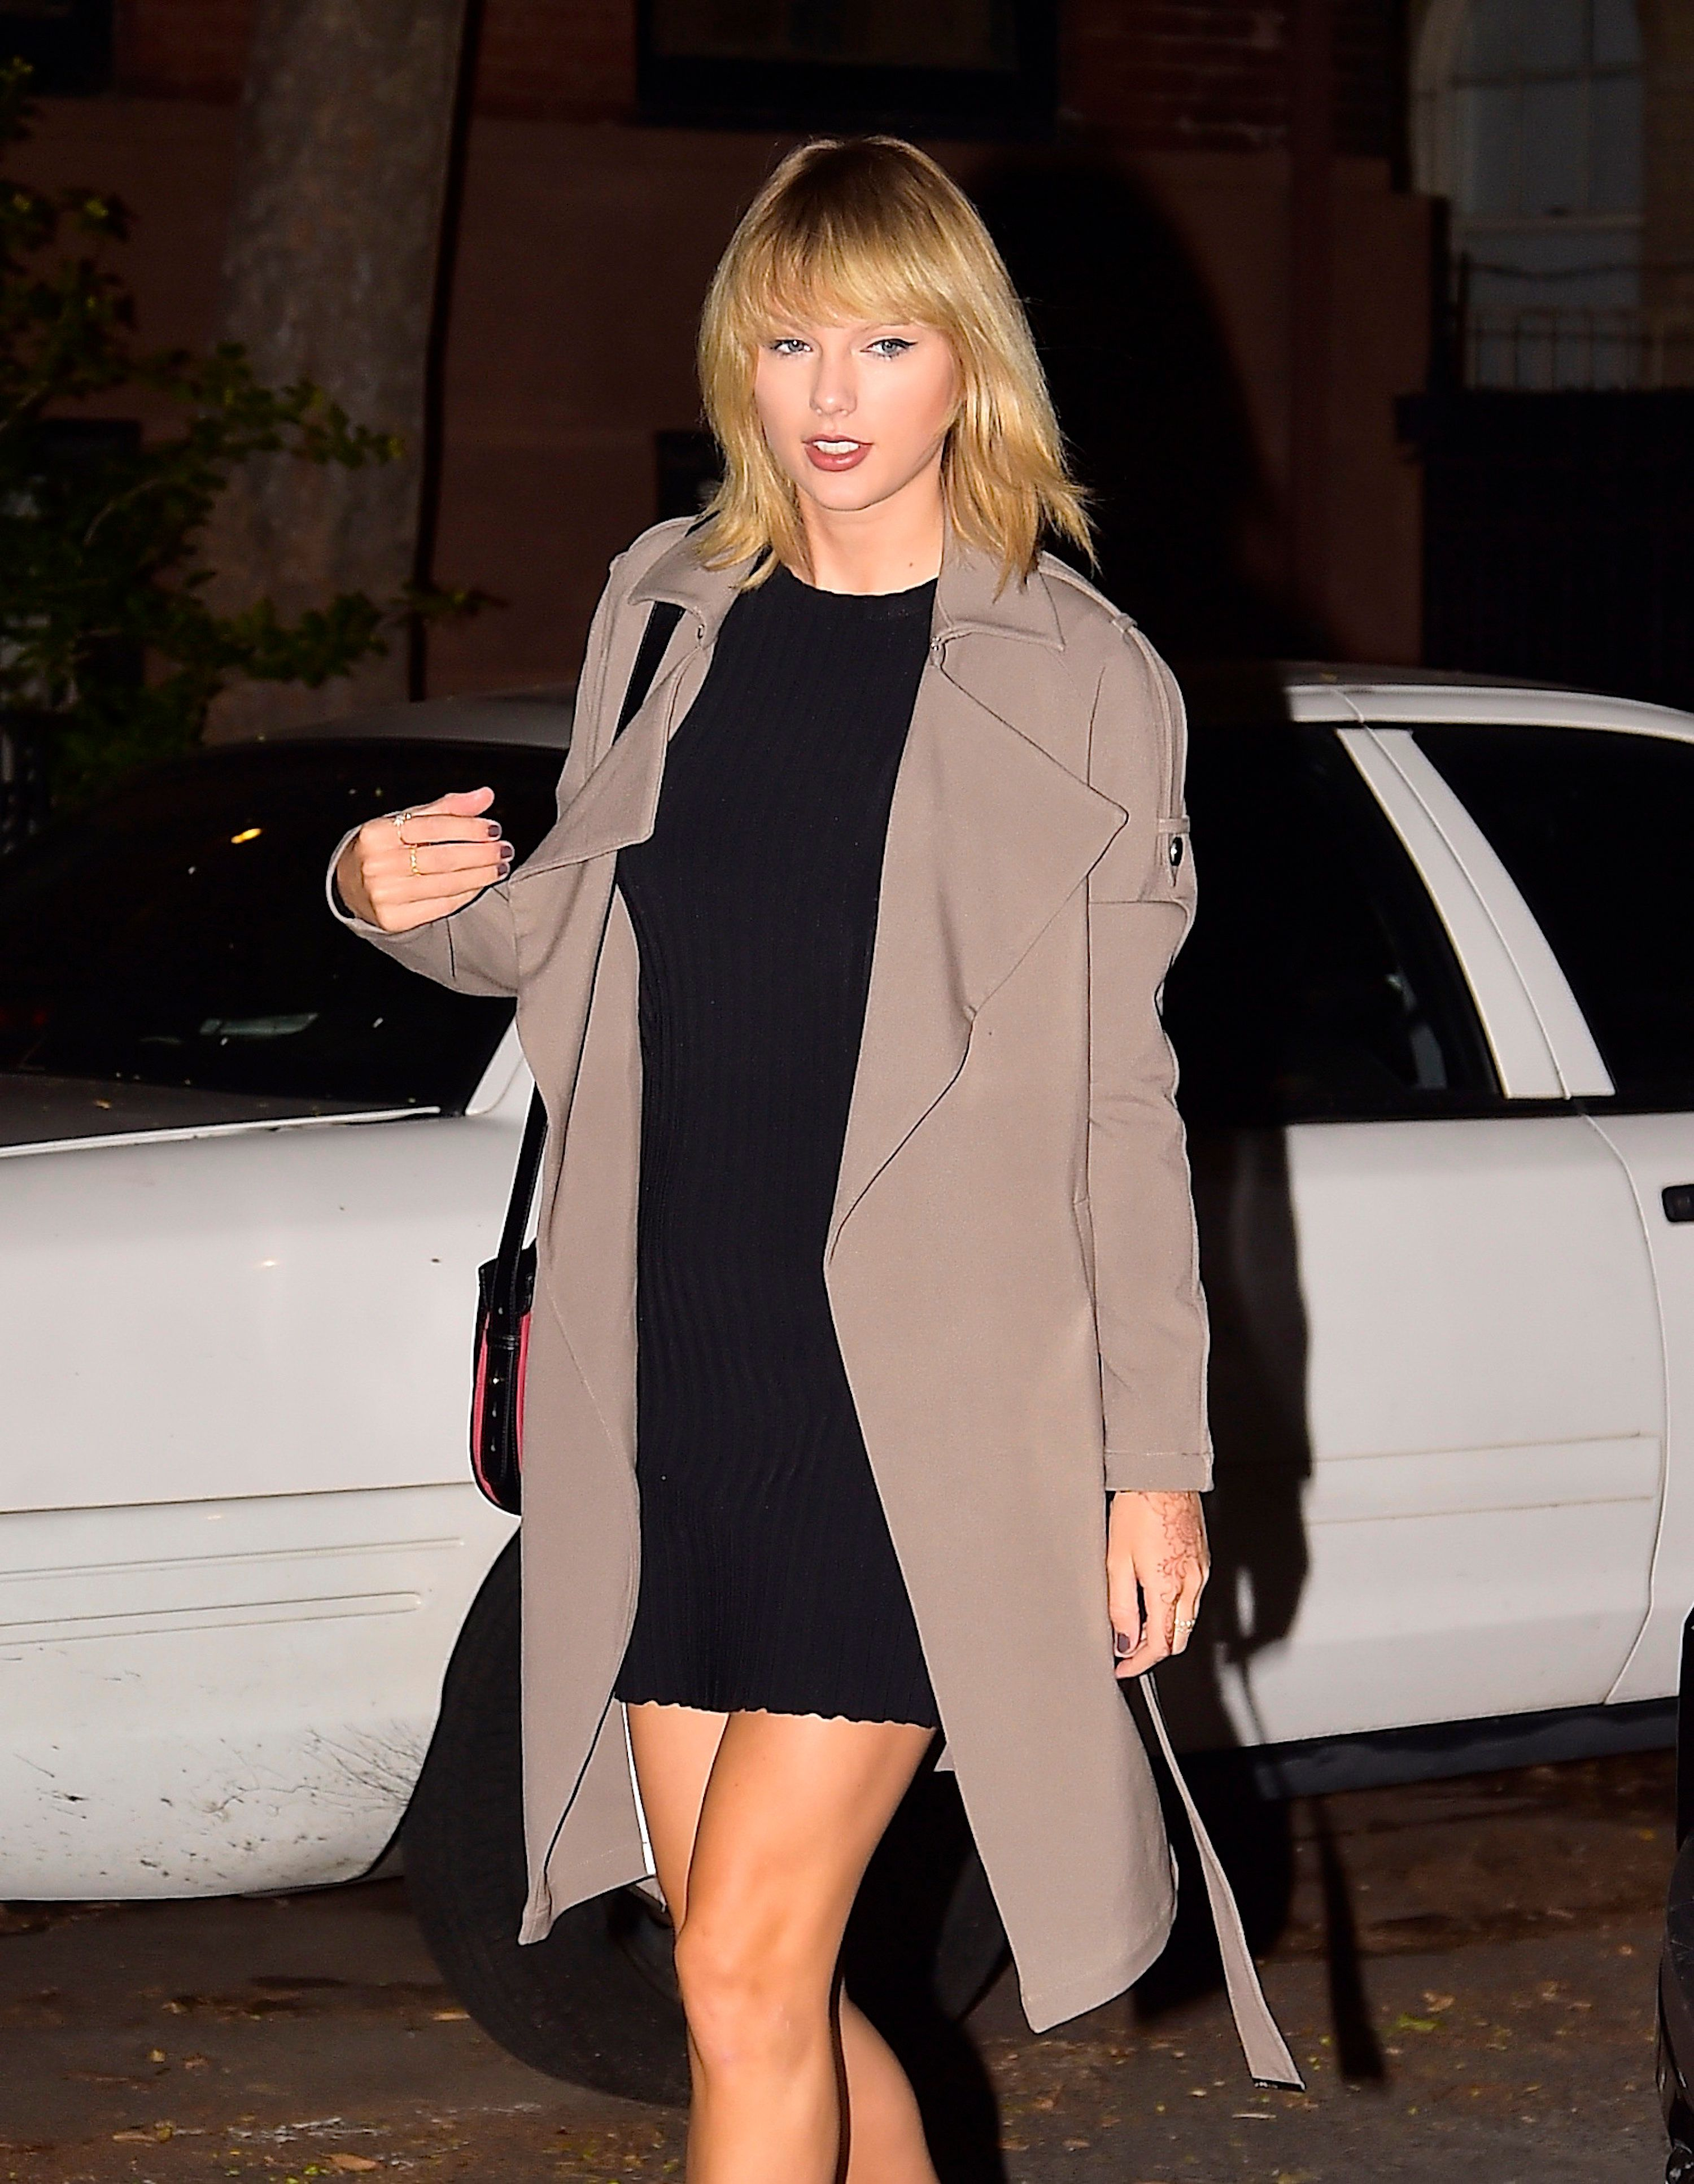 NEW YORK, NY - SEPTEMBER 27:  Taylor Swift is seen in the West Village  on September 27, 2016 in New York City.  (Photo by Alo Ceballos/GC Images)